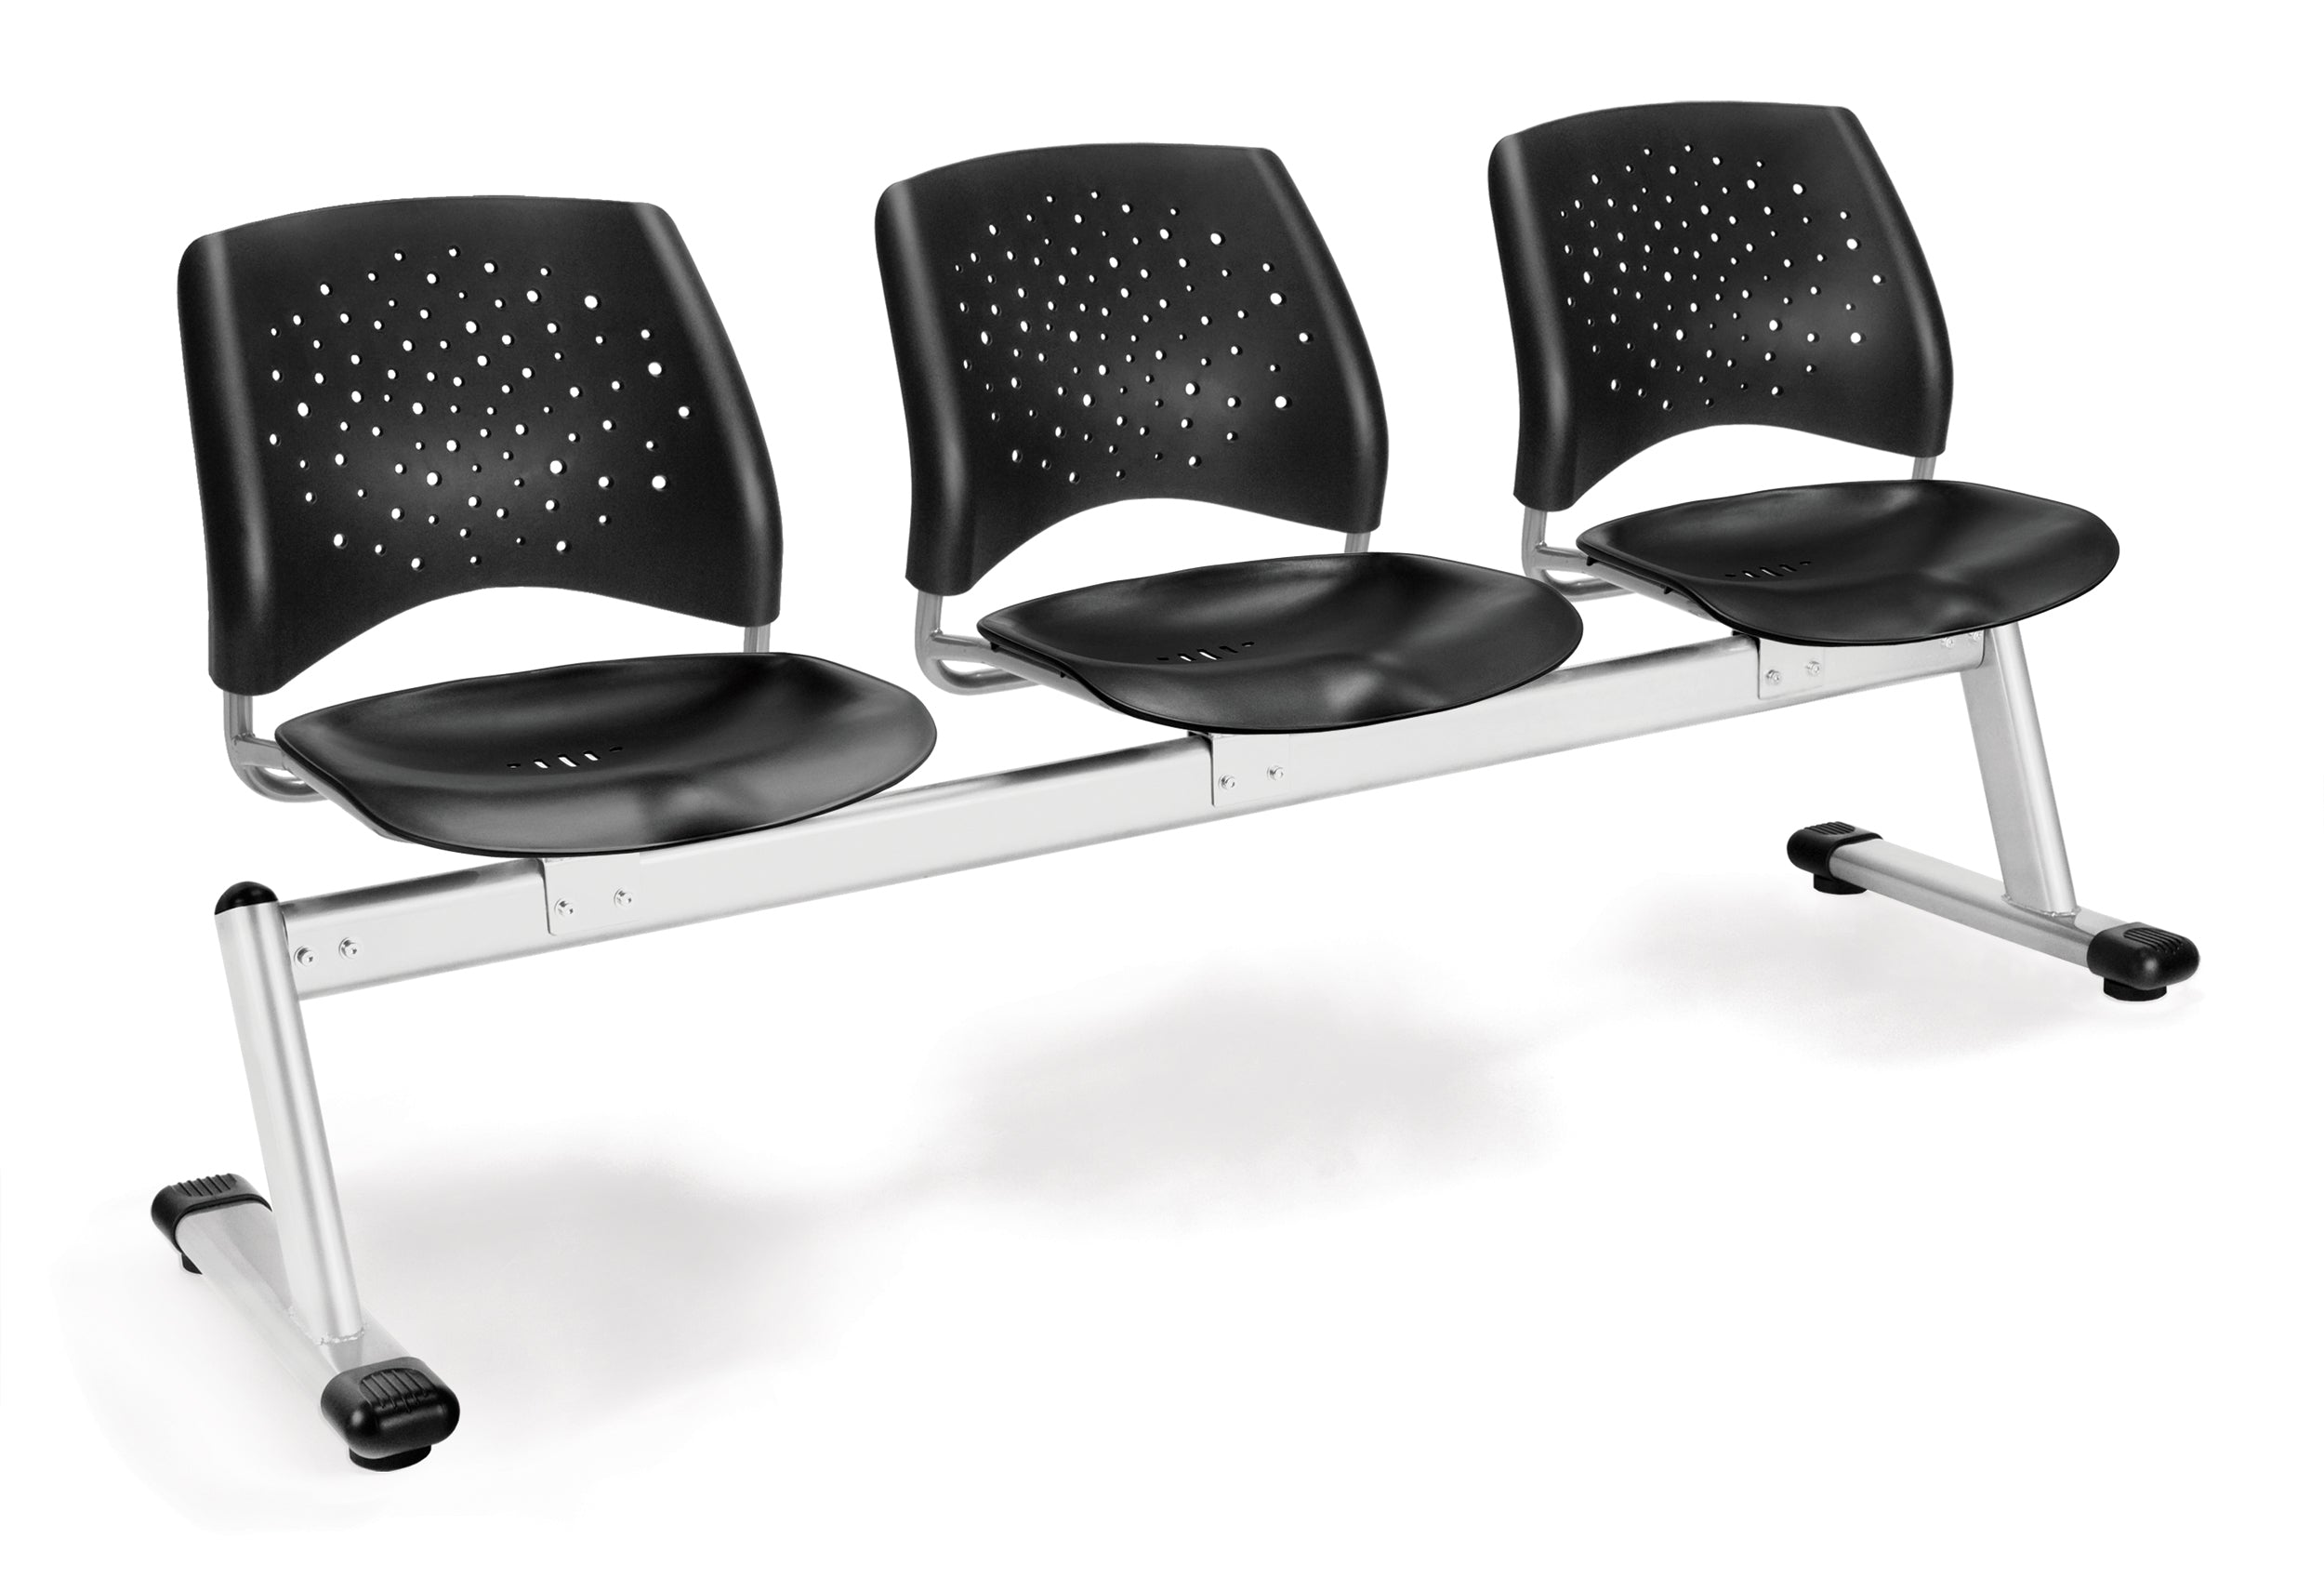 Ofminc Model 323-P Stars 3-Unit Beam Seating with 3 Plastic Seats